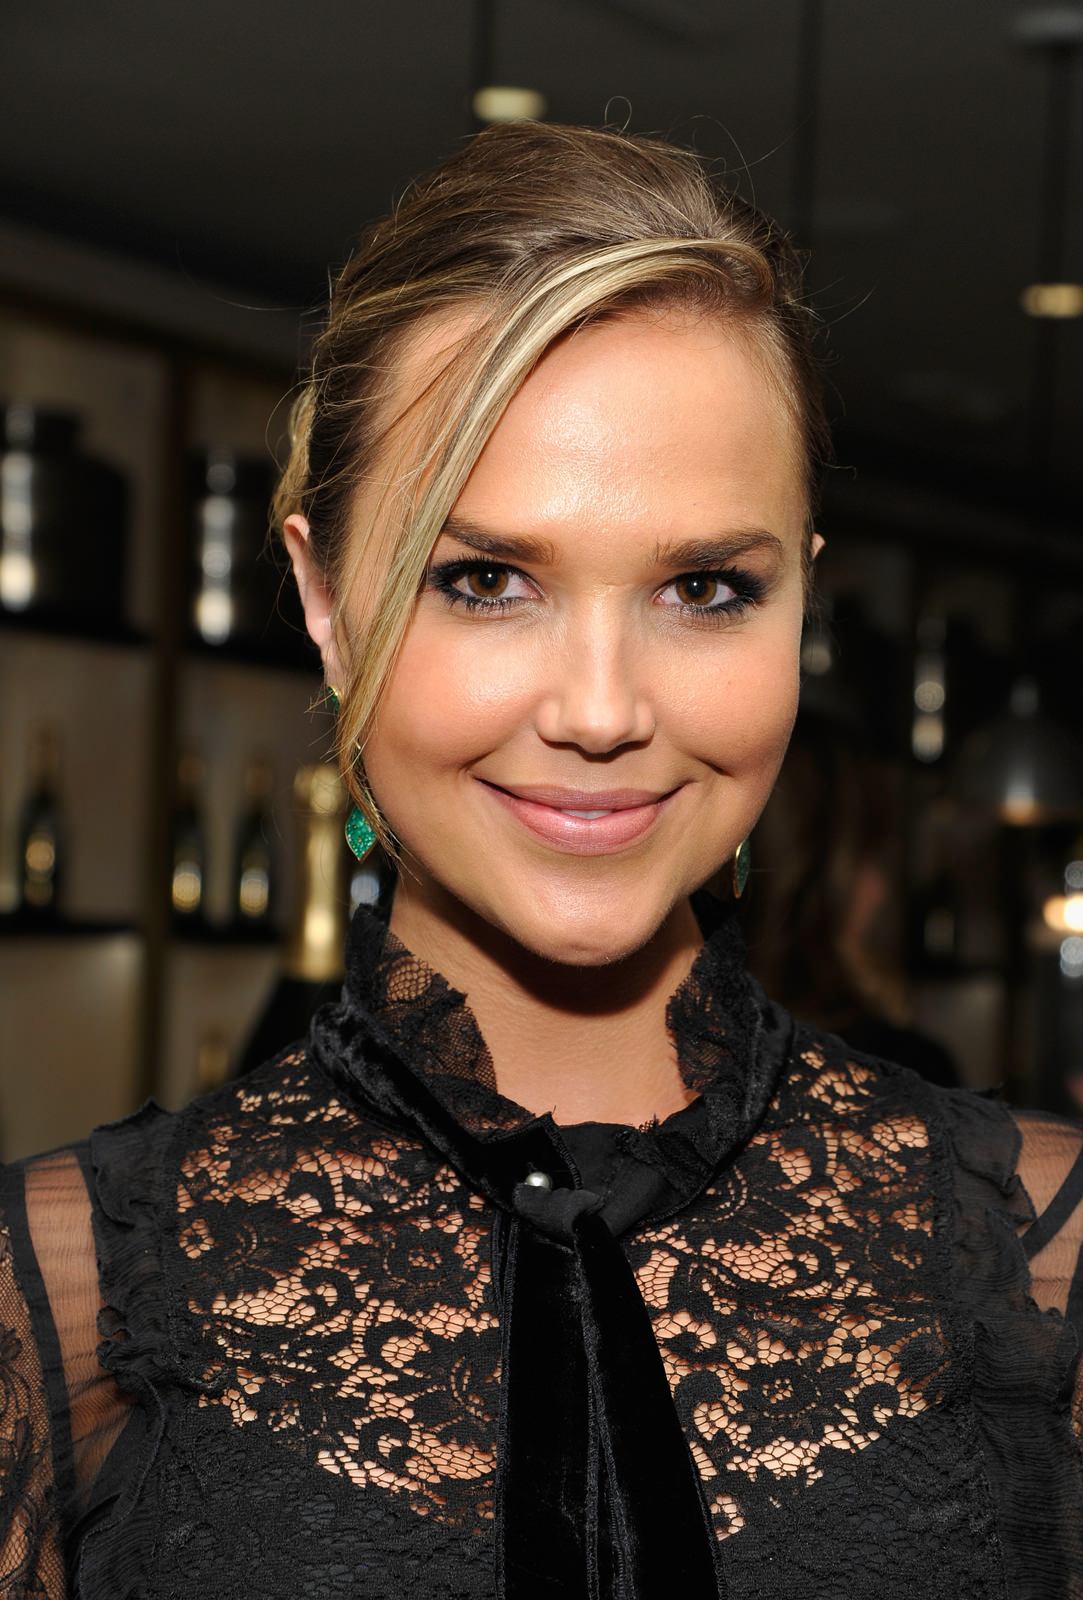 Arielle Kebbel Photo Gallery